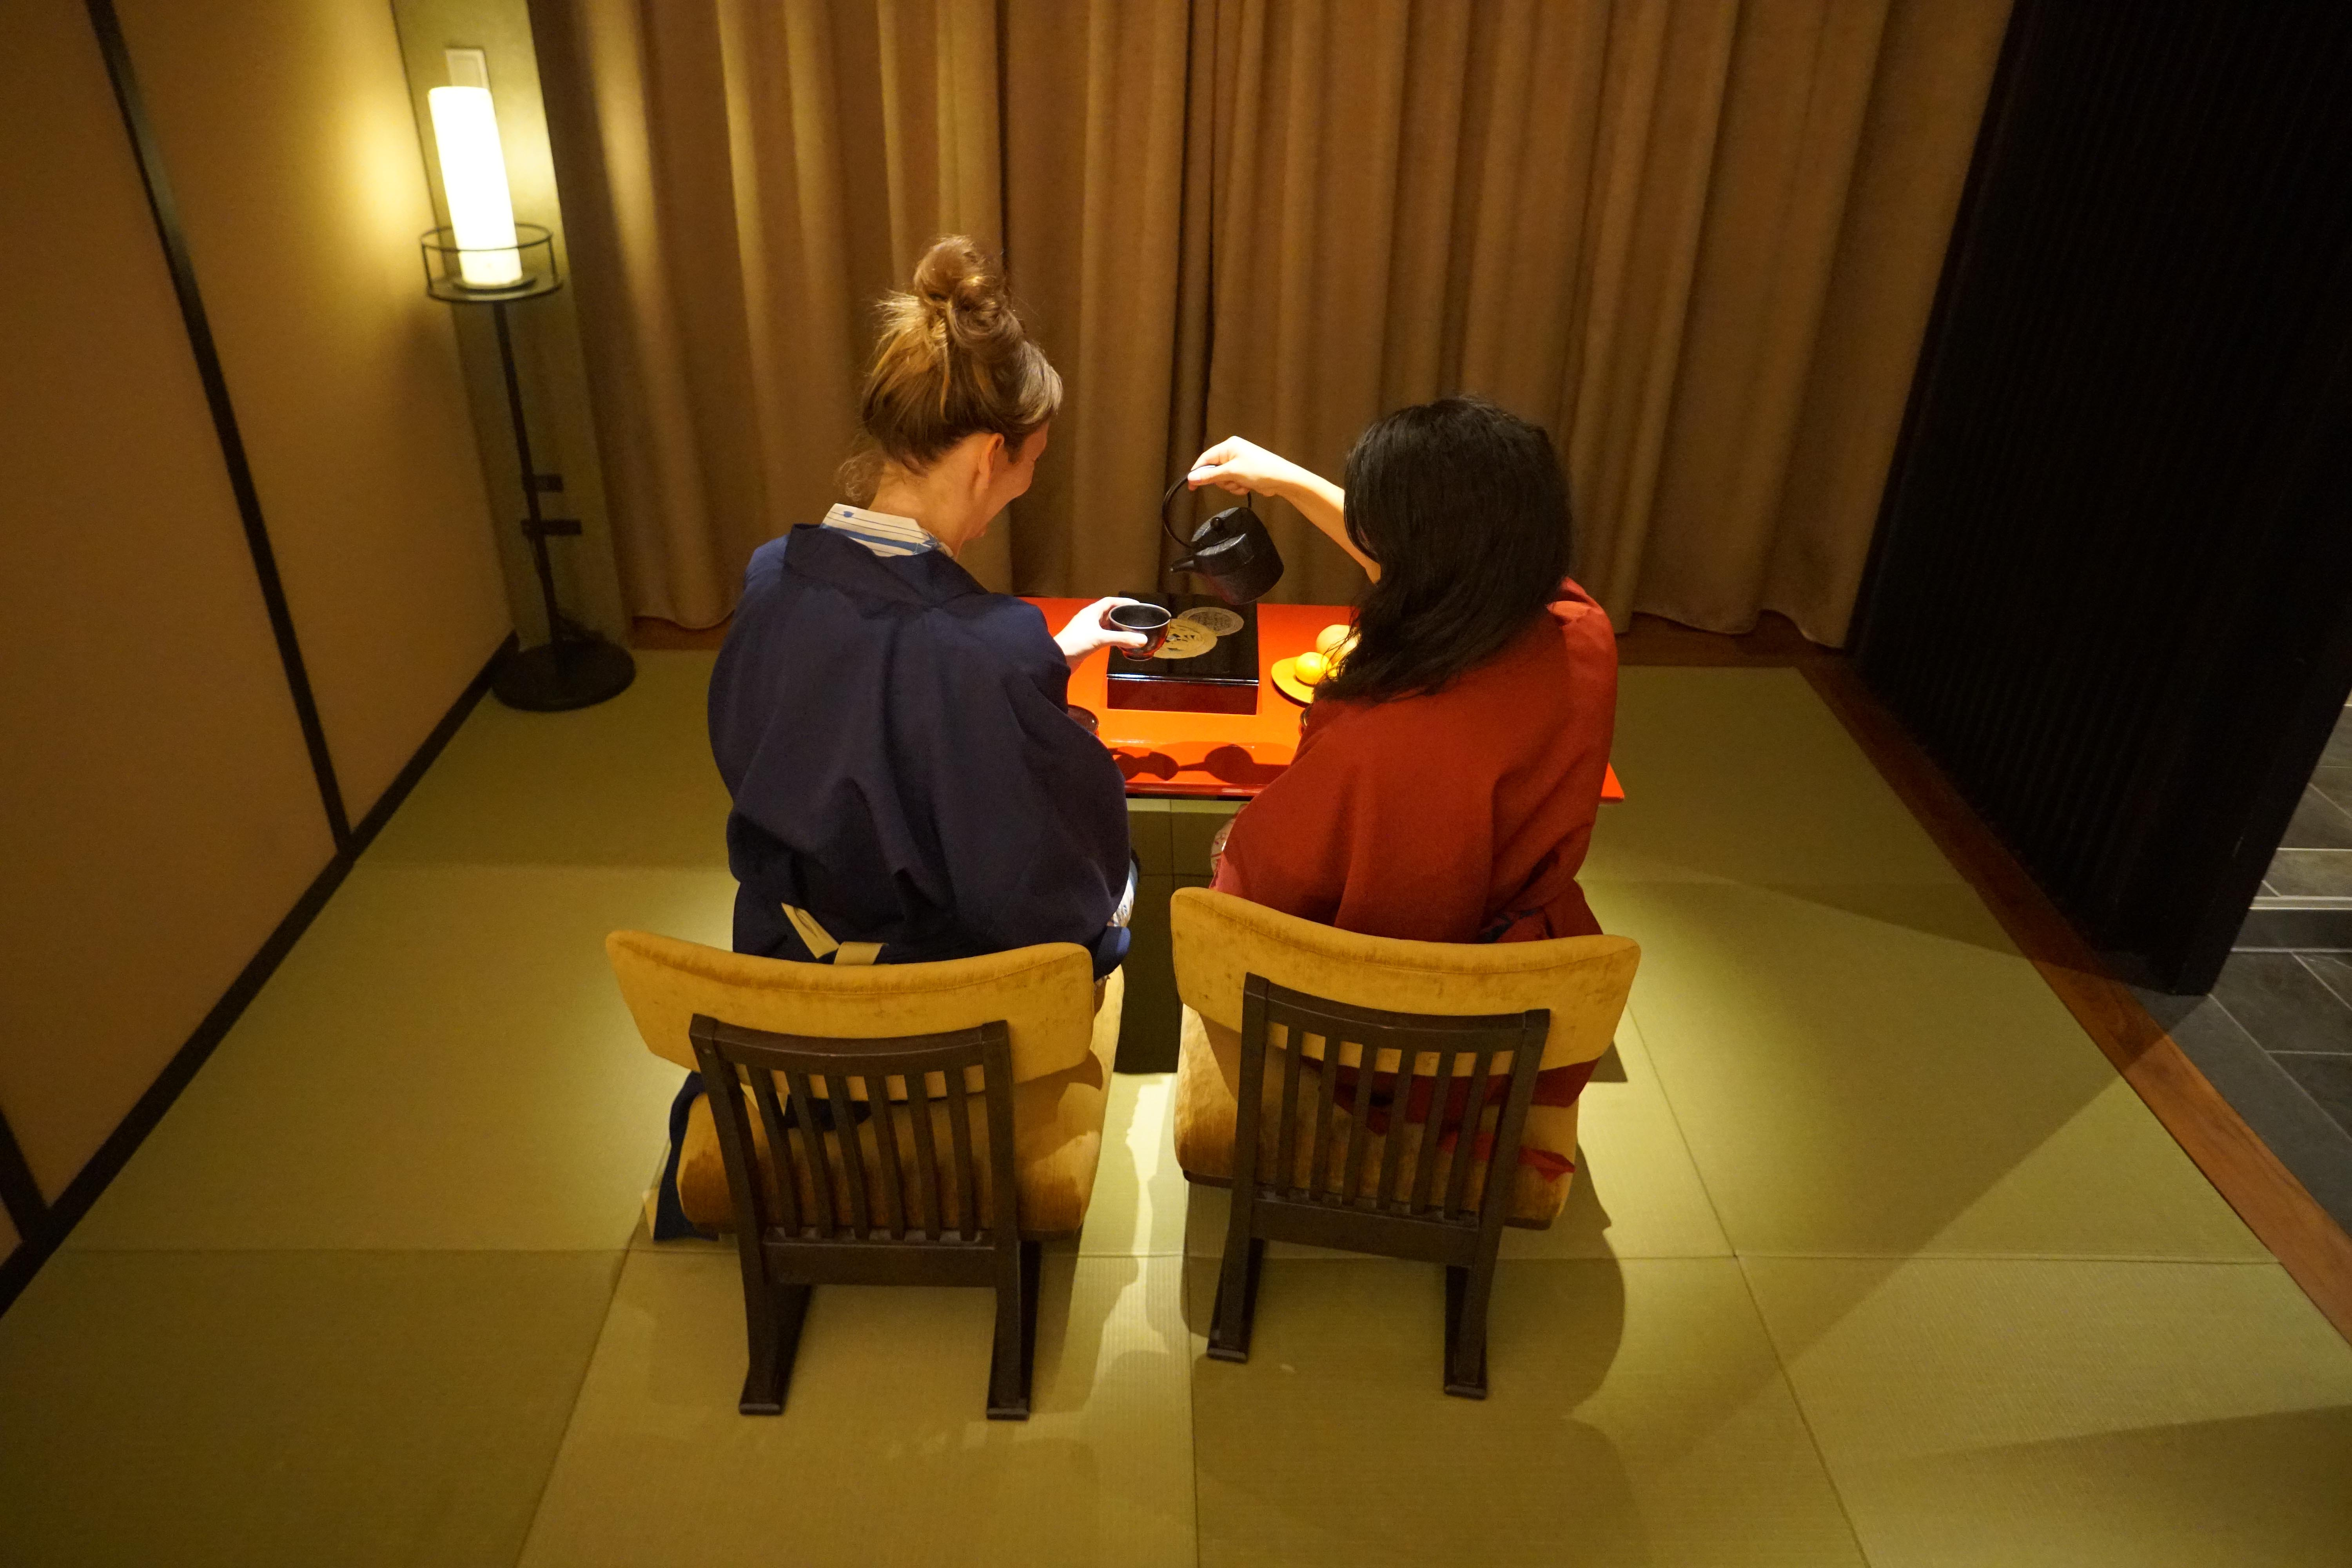 two girls having tea at the table on the matt in the room